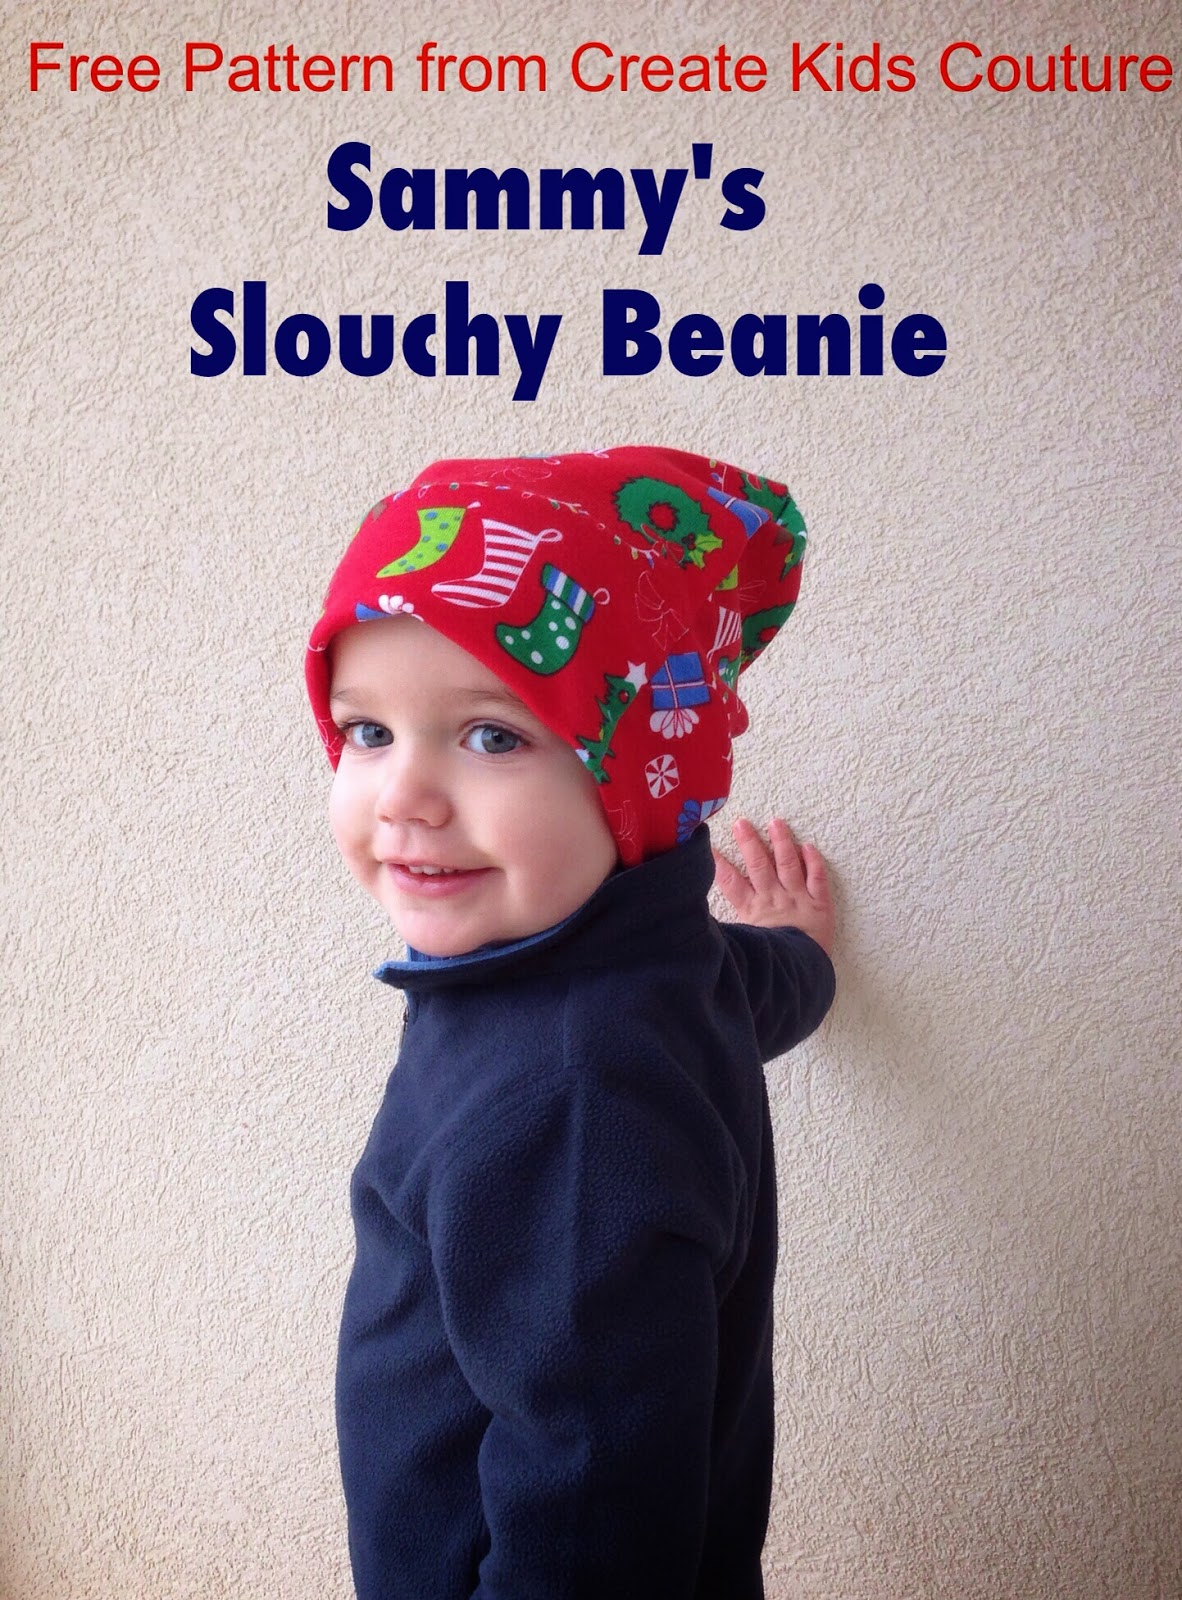 Create Kids Couture: Free Pattern: Sammy\'s Slouchy Beanie